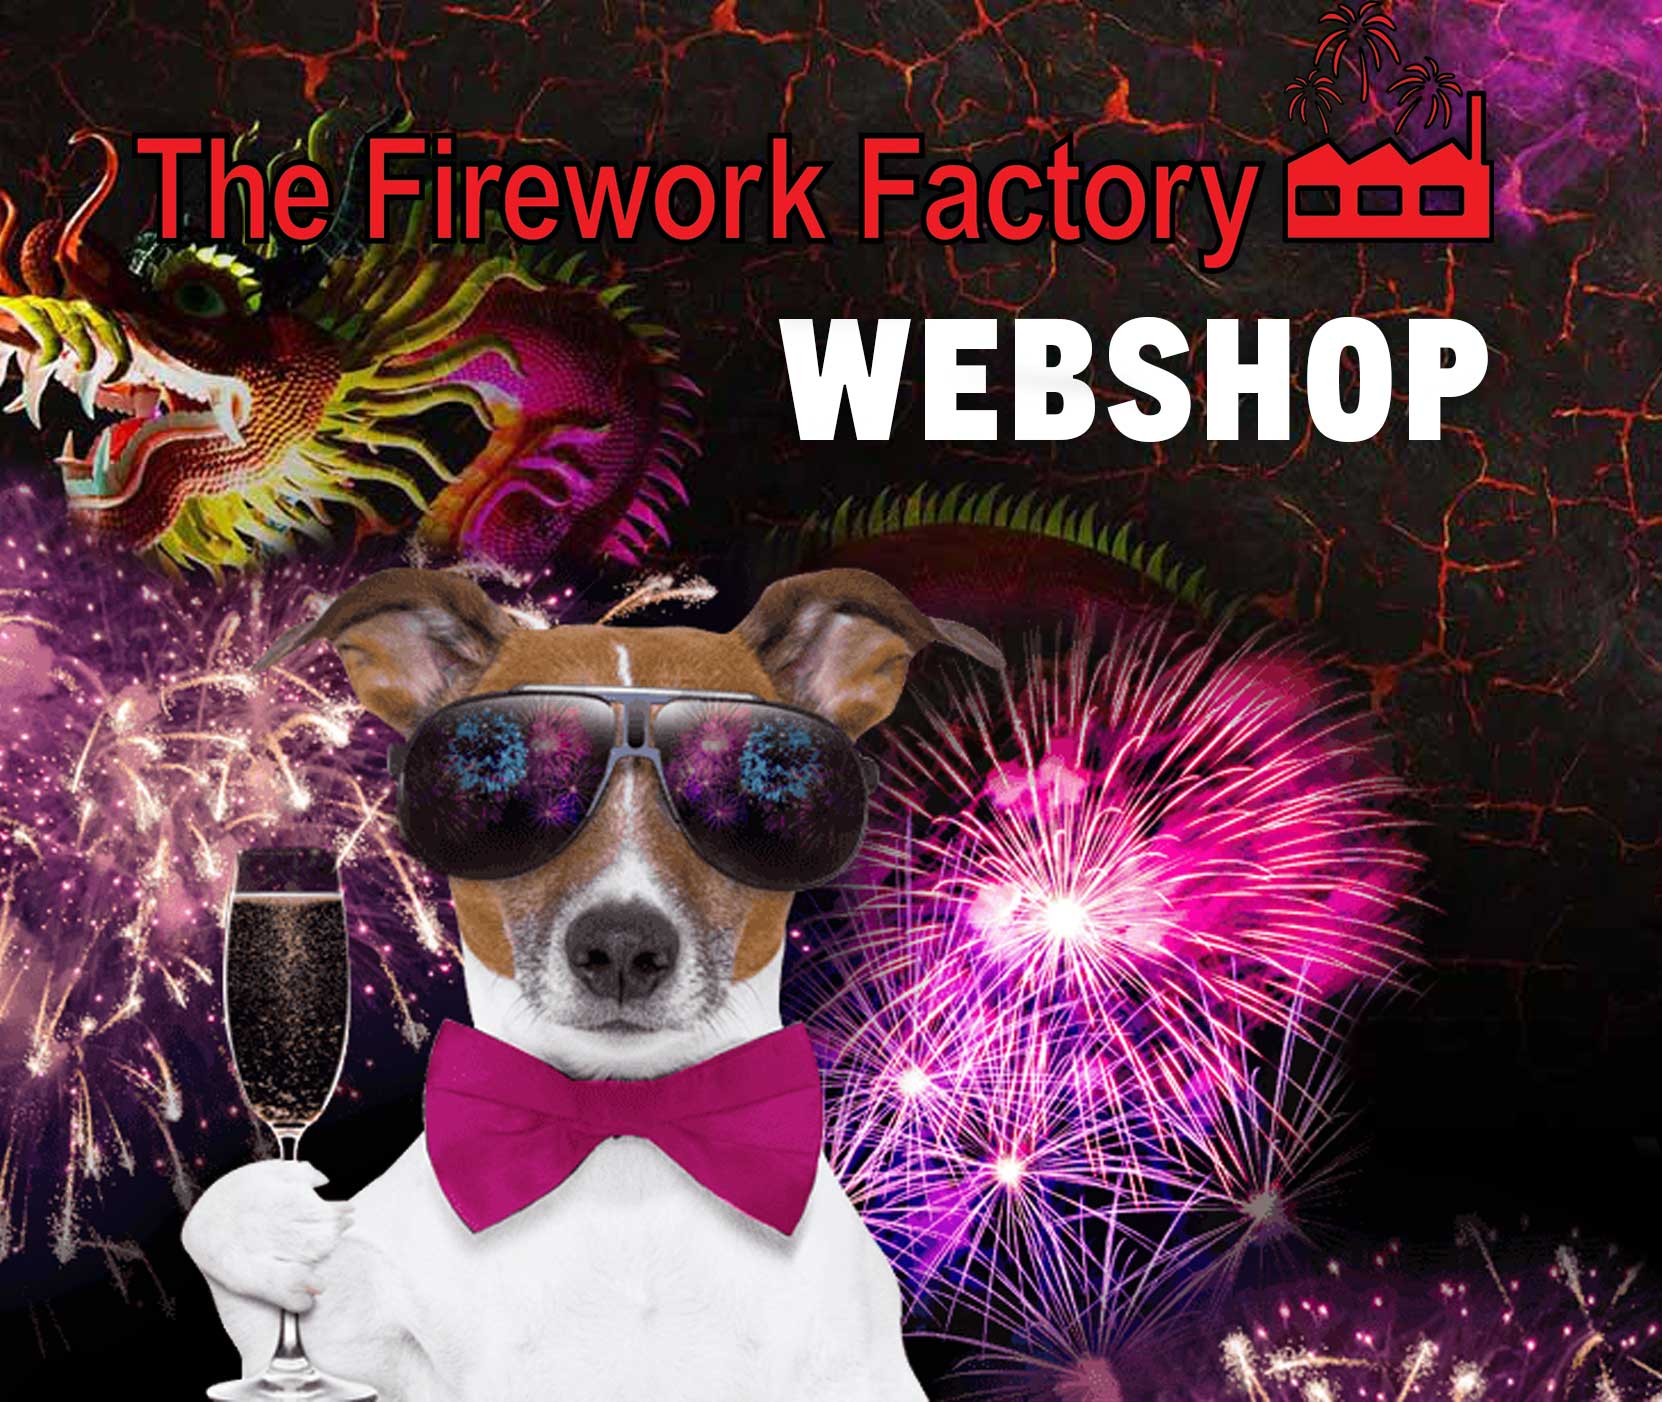 The Firefactory Webshop